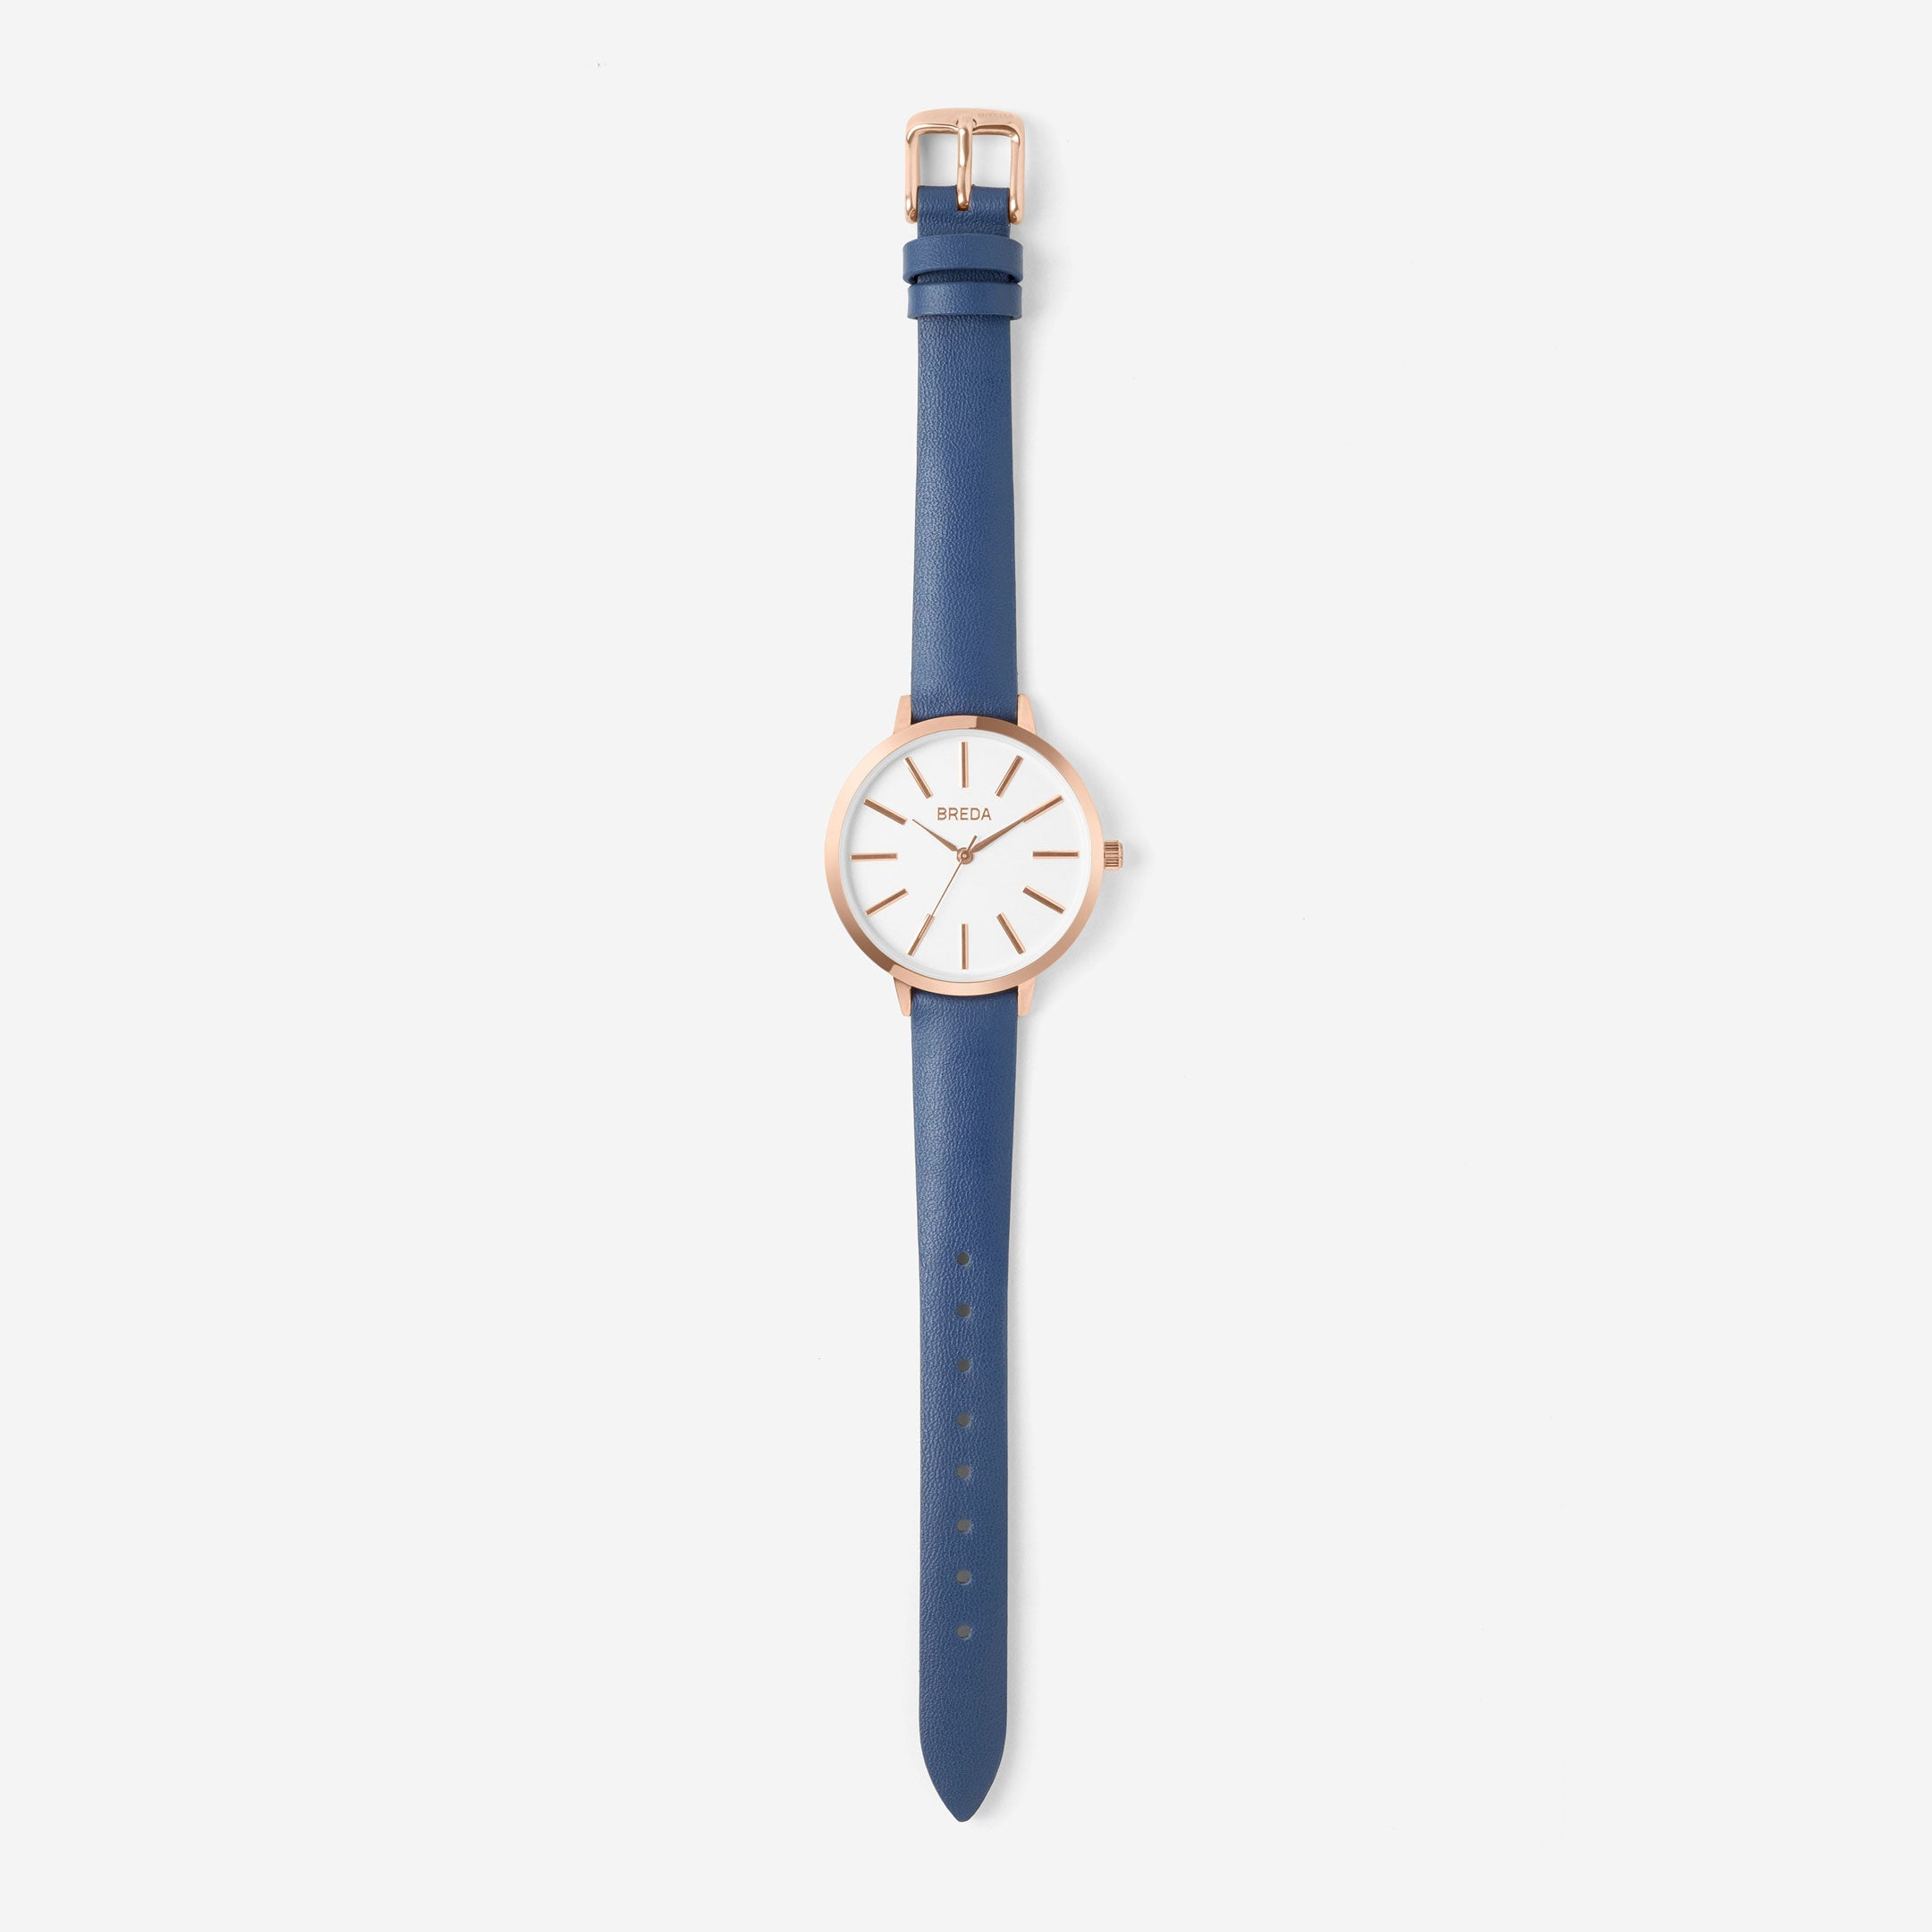 //cdn.shopify.com/s/files/1/0879/6650/products/breda-joule-1722j-rosegold-navy-leather-long_1024x1024.jpg?v=1491254369